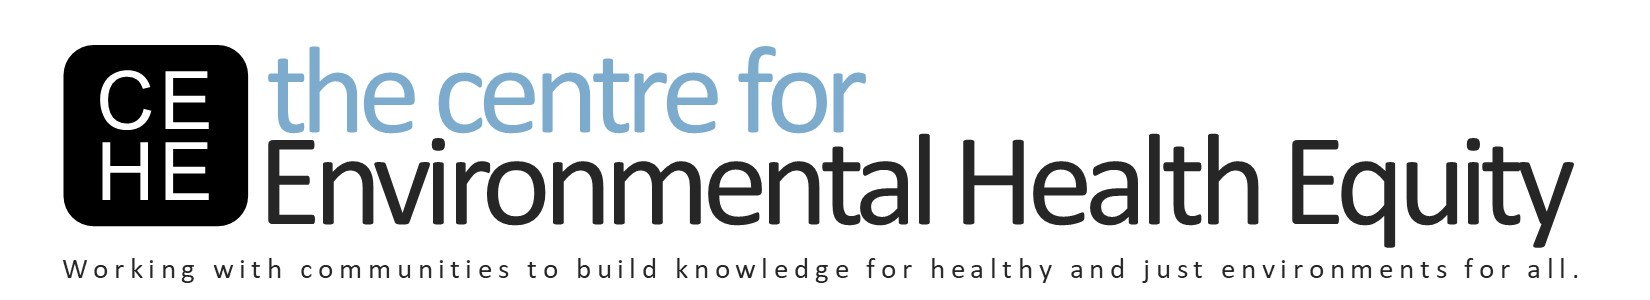 The Centre for Environmental Health Equity